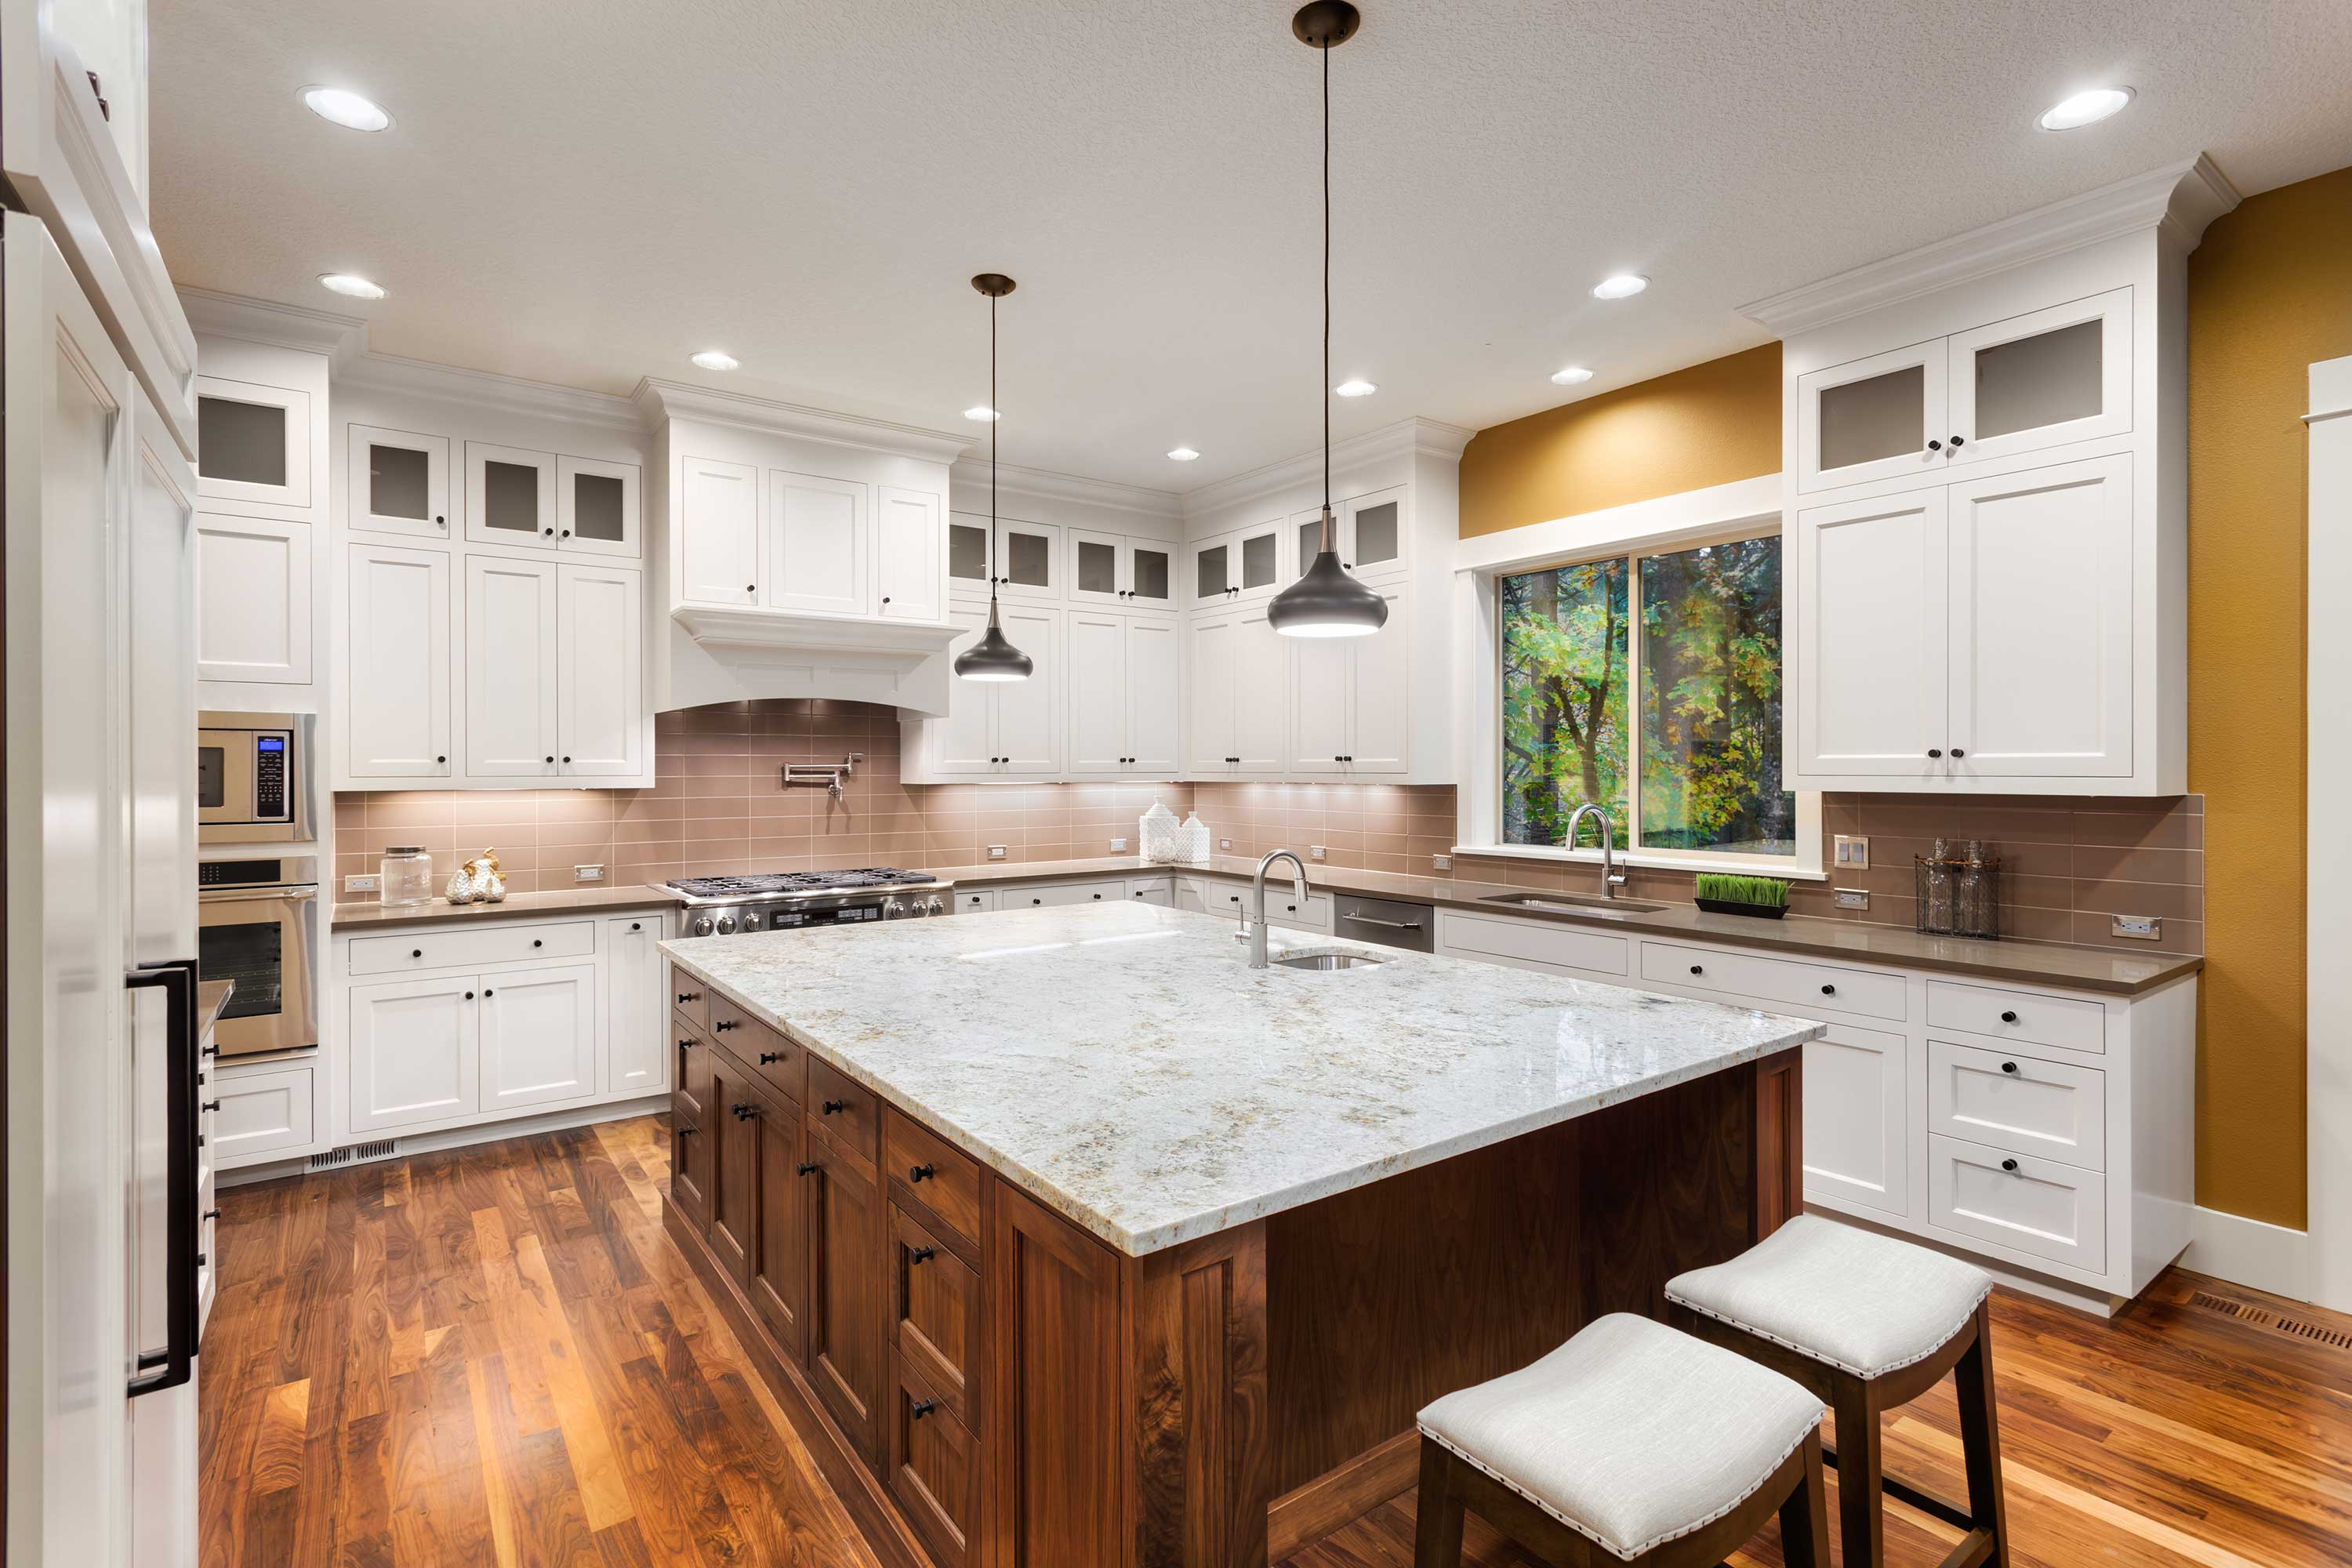 10 kitchen remodeling tips to save you money – residential remodeling ri